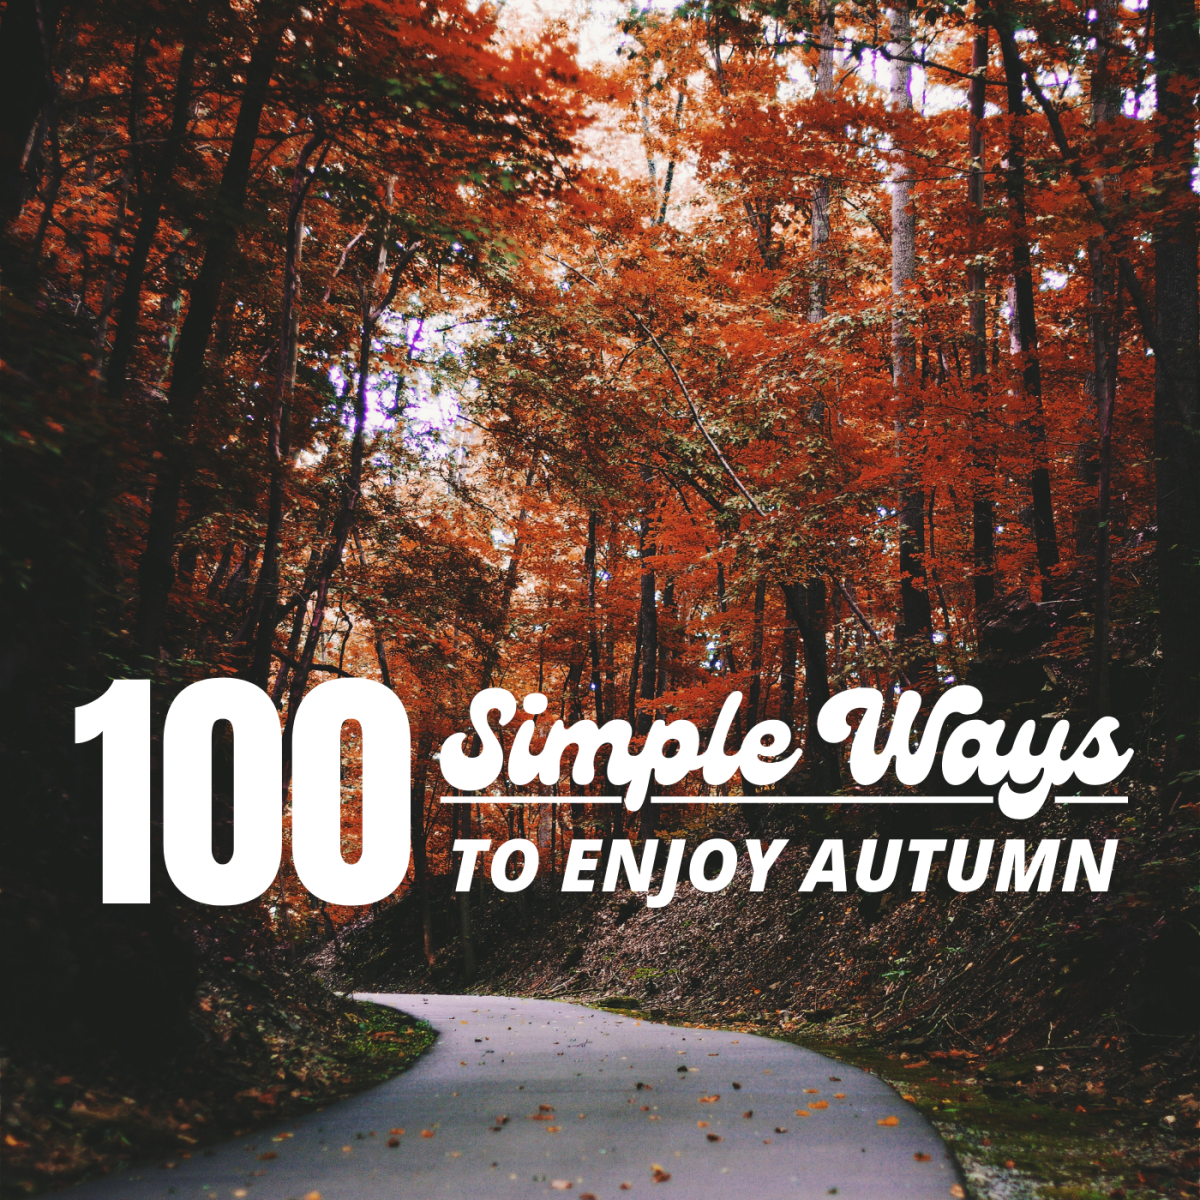 Follow fall's lead and make the most of the season with these 100 ideas.